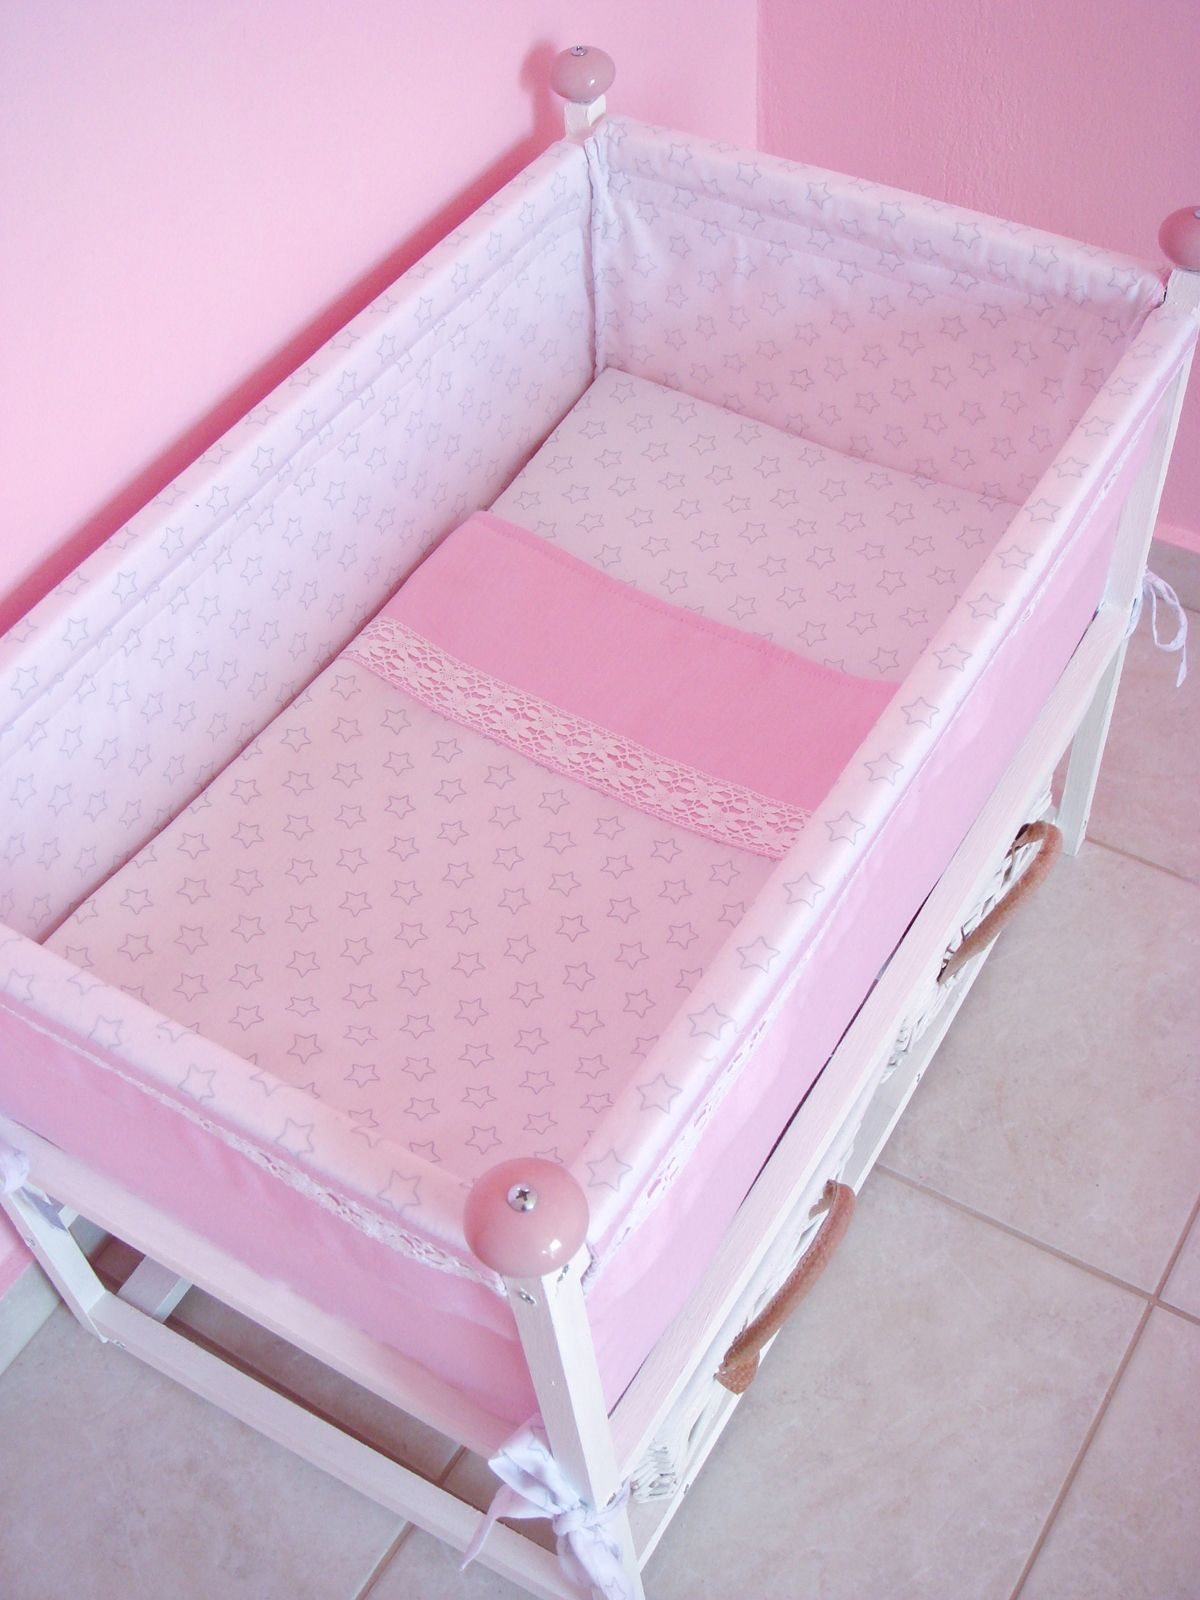 Diy Doll Basinet Crib Bed With Matching Doll Blanket